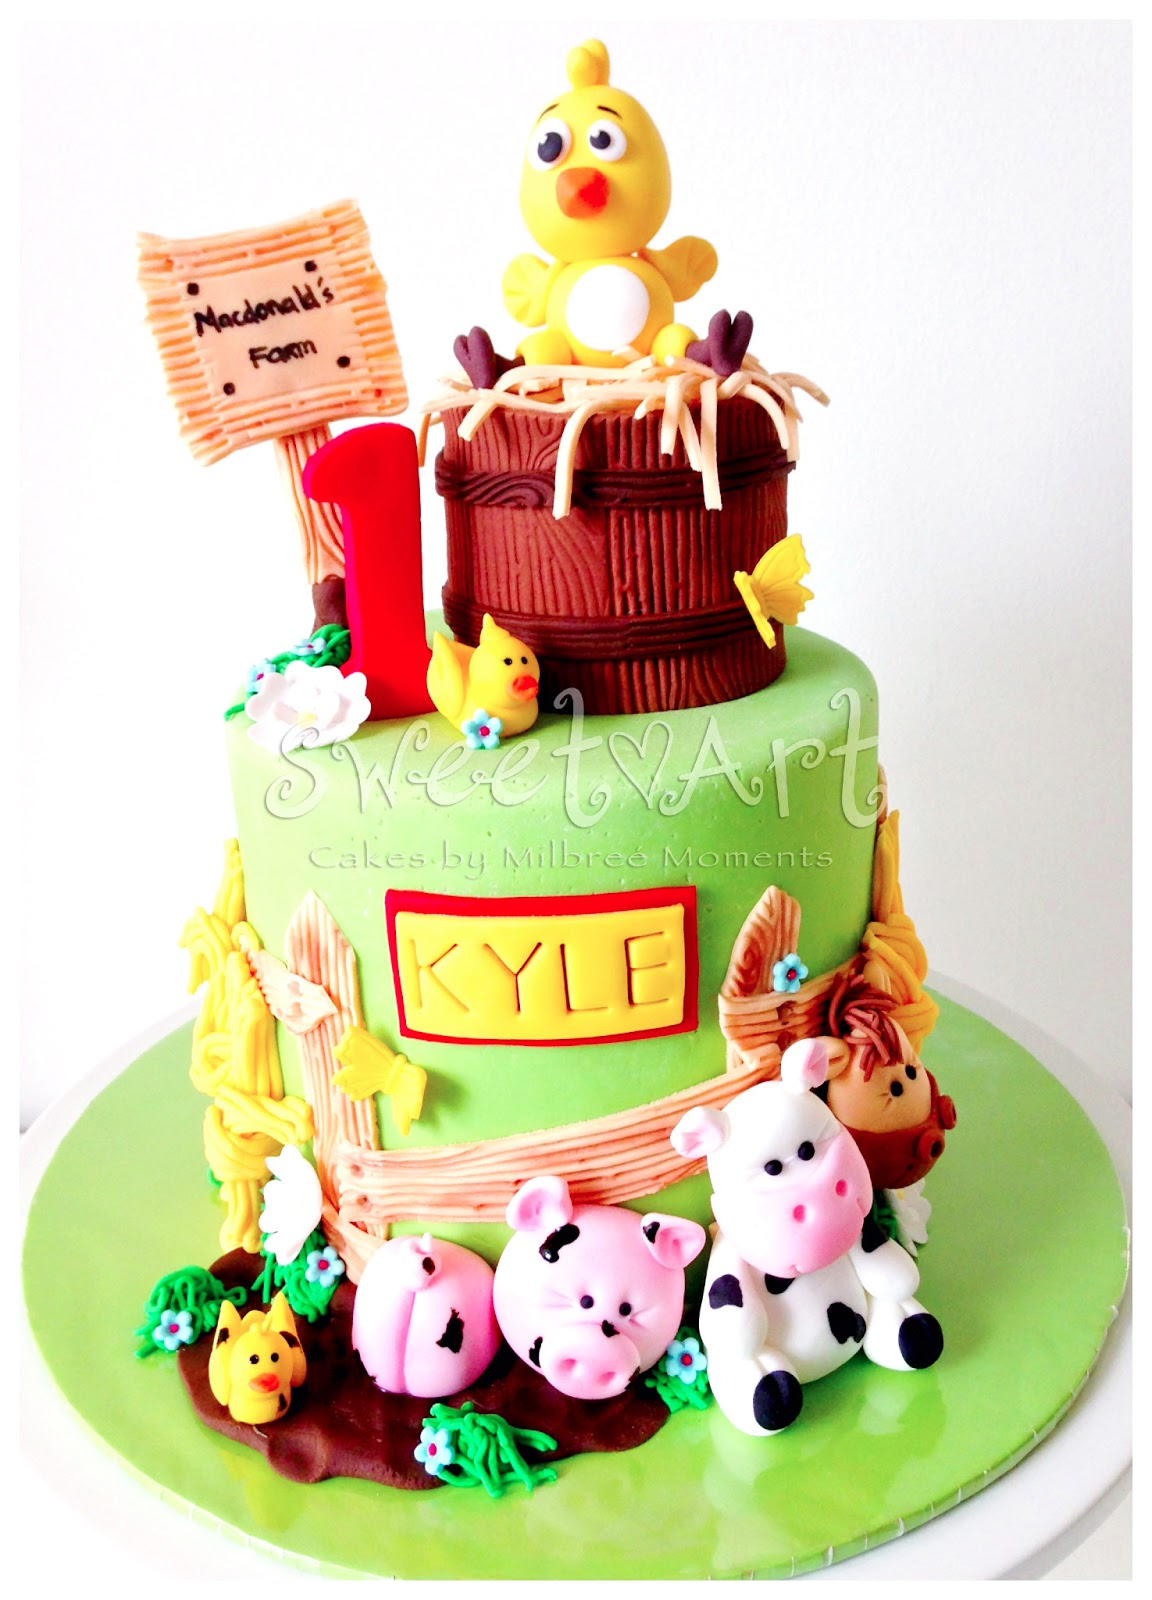 Sweet Art Cakes by Milbre Moments April 2013